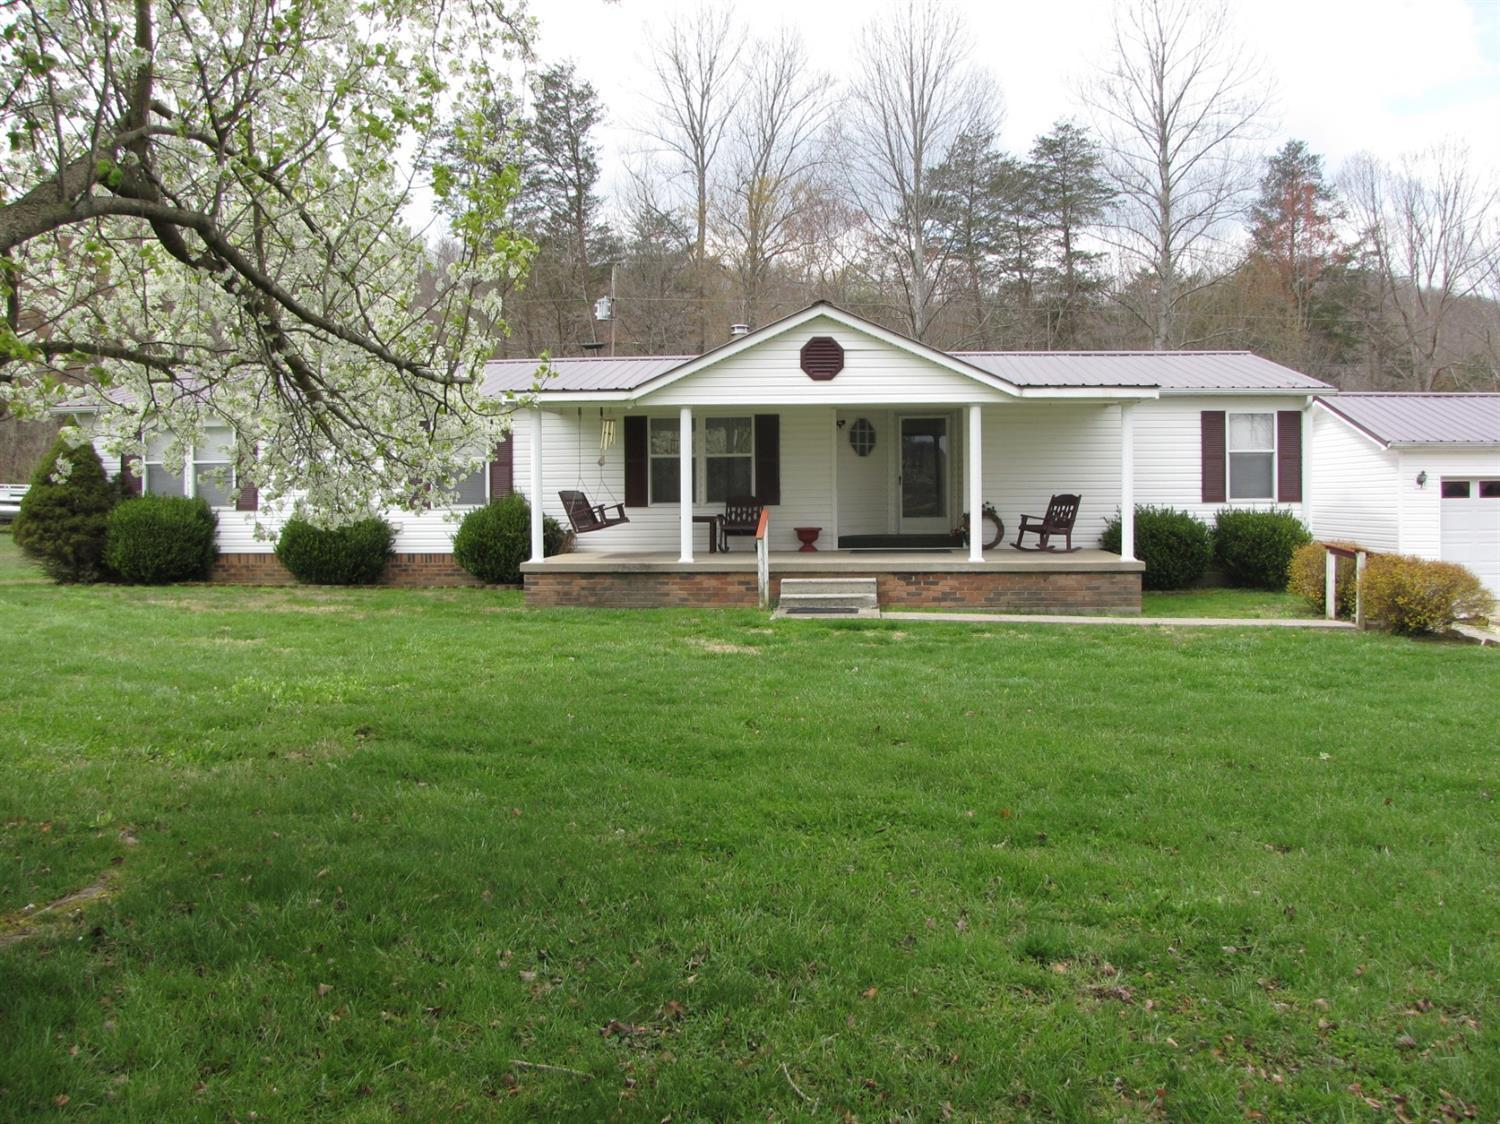 144 Astor Lane, 20104542, Crab Orchard, Single-Family Home,  for sale, Bradley  Warford, Realty World Adams & Associates, Inc.